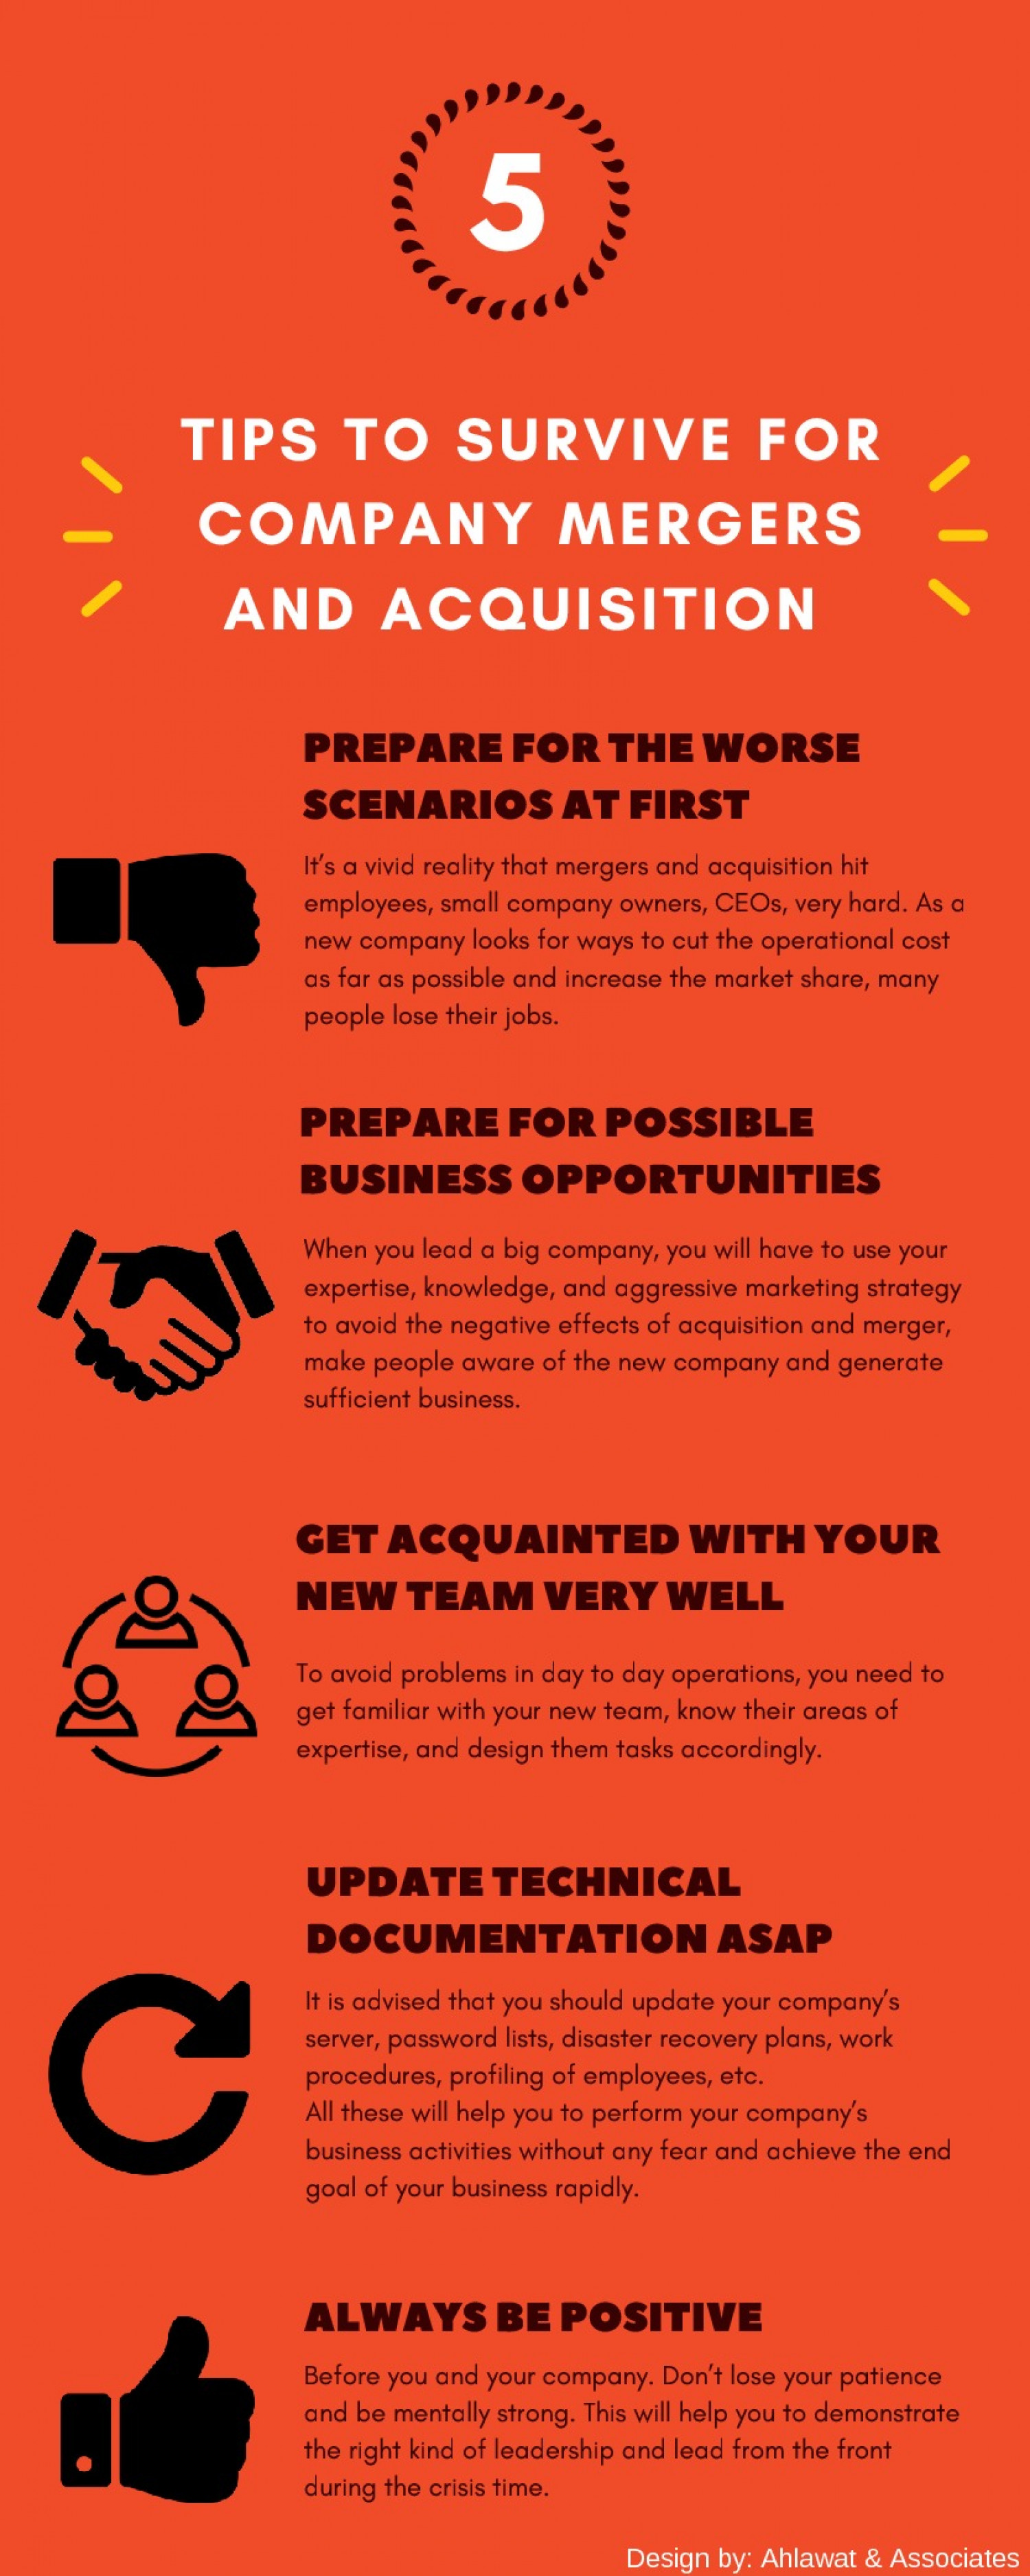 5 Tips To Survive And Succeed For Company Mergers And Acquisition Infographic